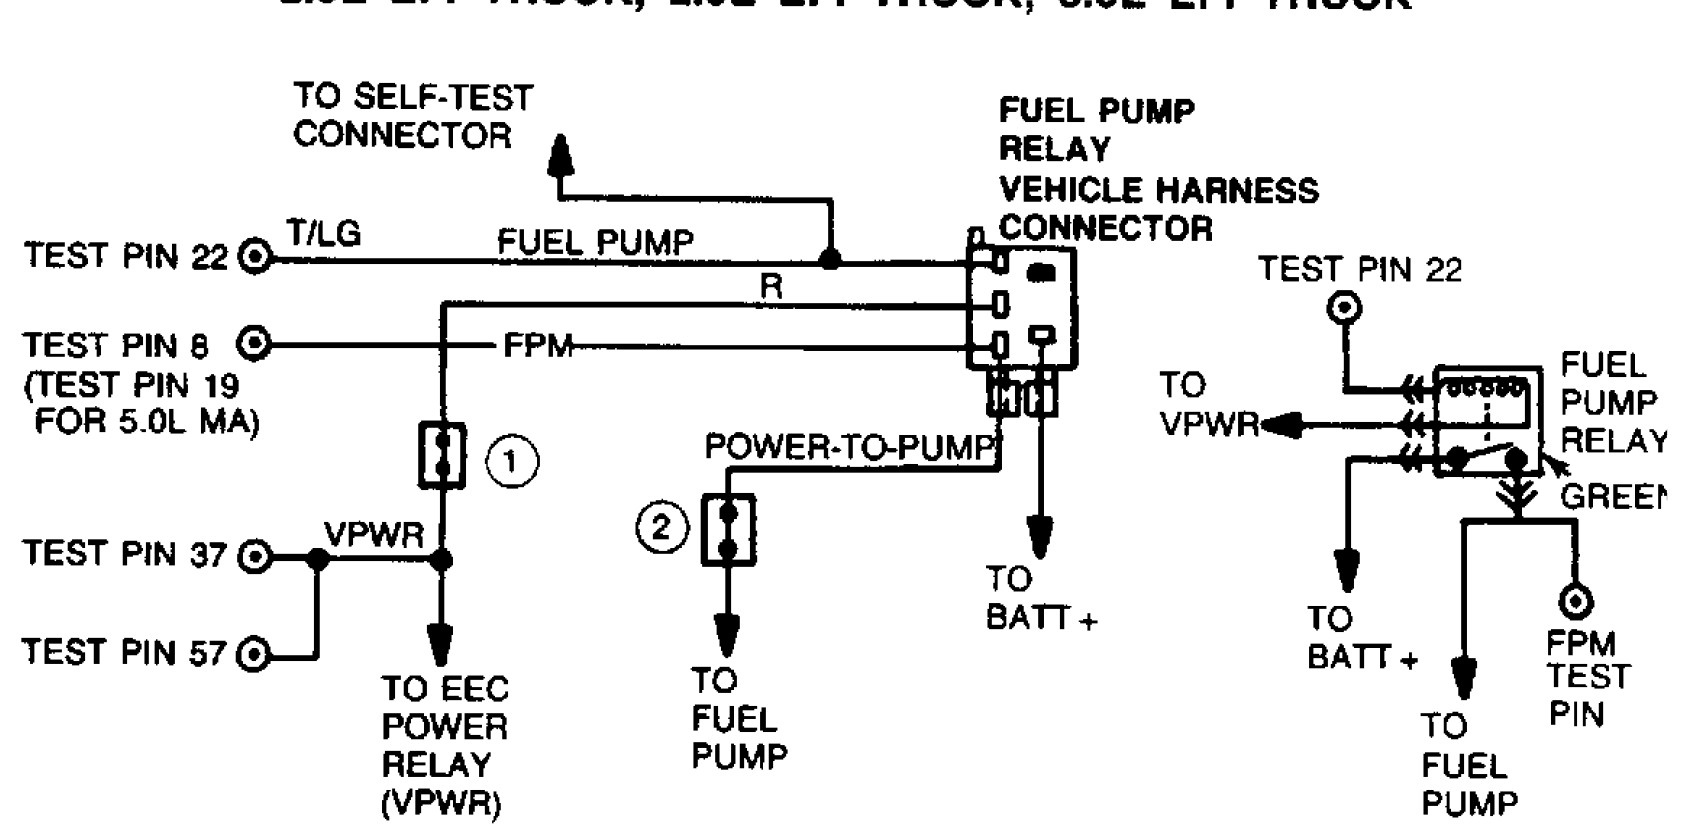 ford fuel pump relay wiring diagram 3 gang light switch multiple lights best library gm connector 1989 ranger obd1